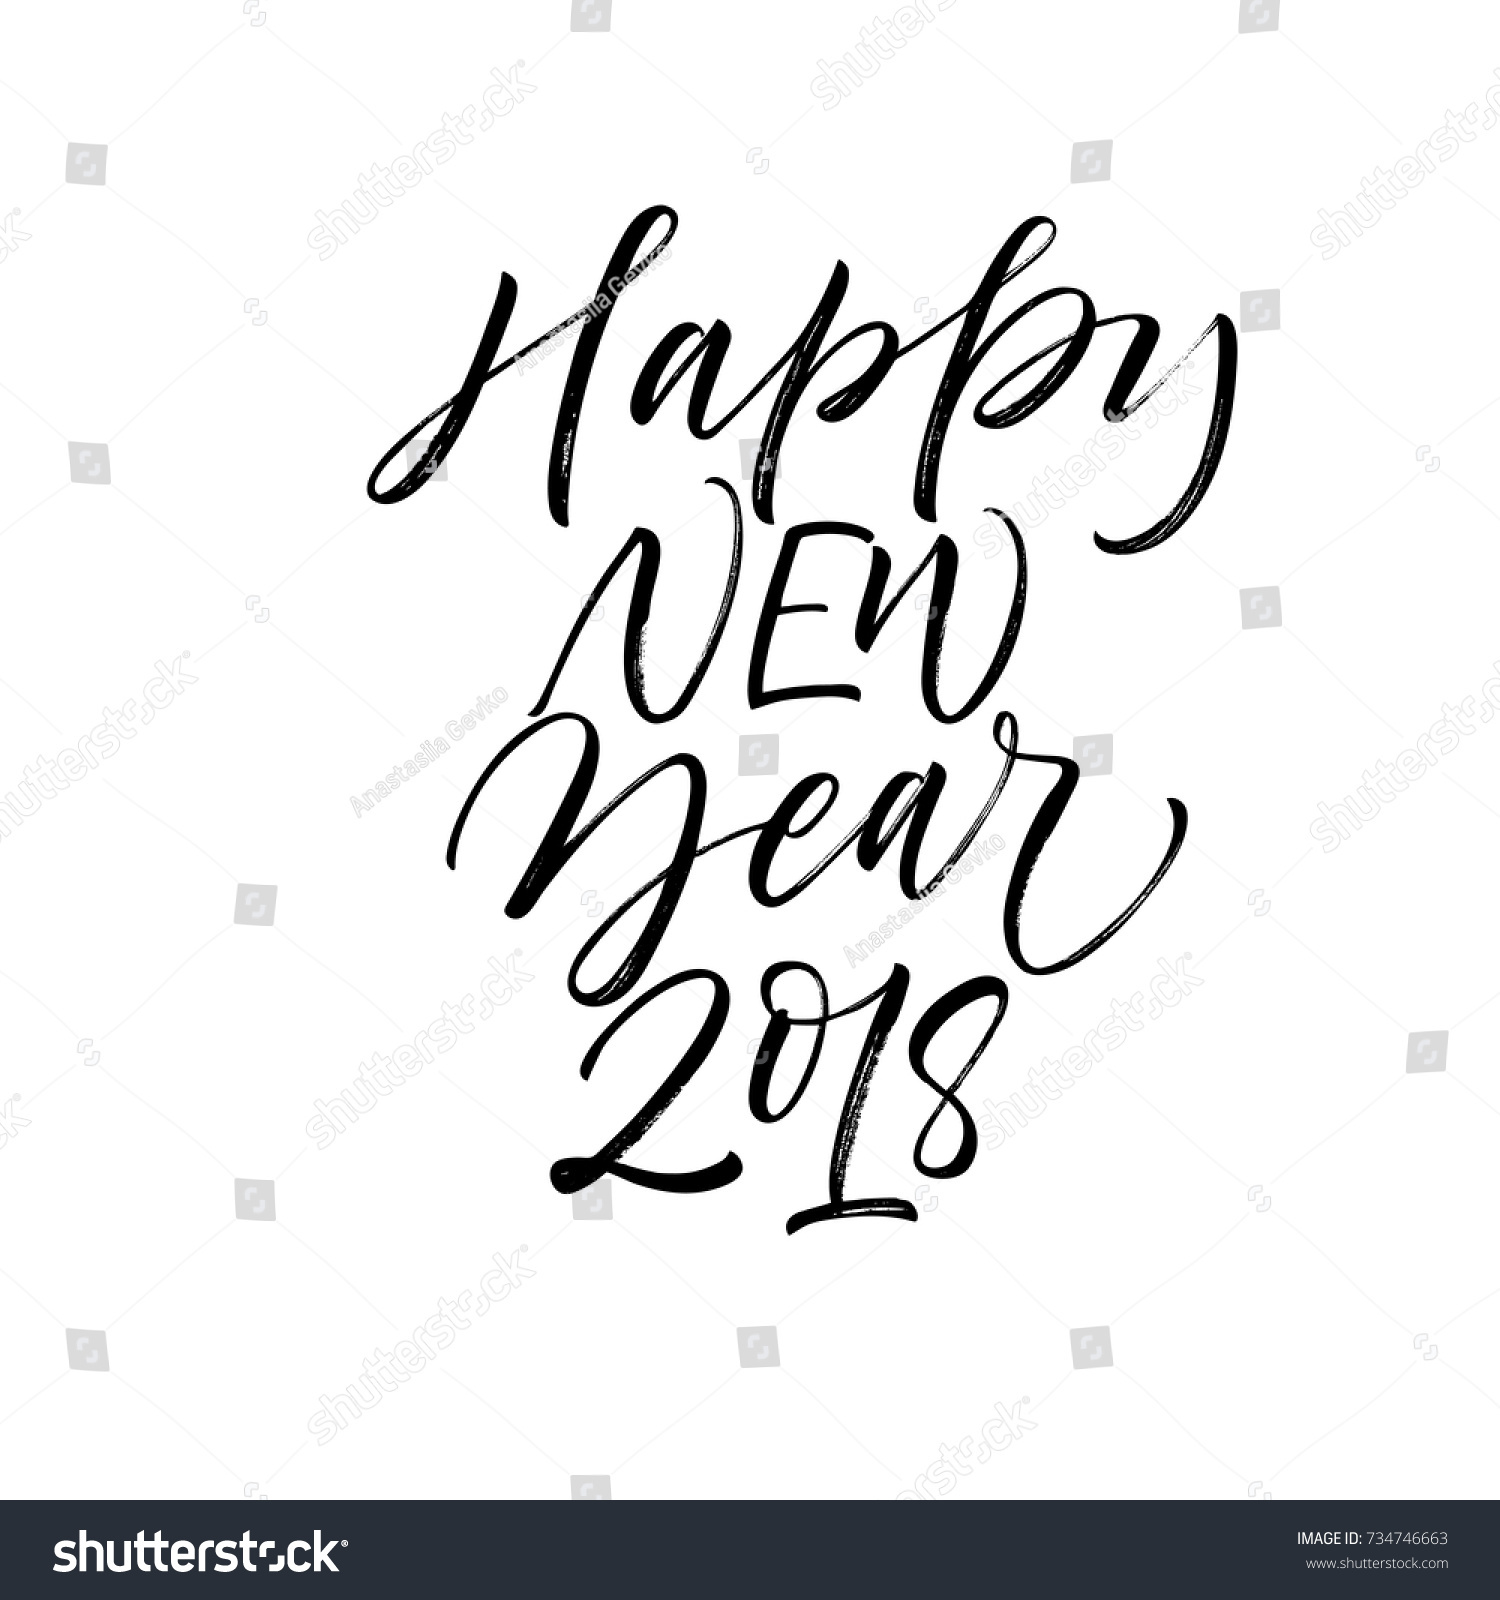 Happy New Year 2018 Phrase Greeting Stock Vector (Royalty Free ...